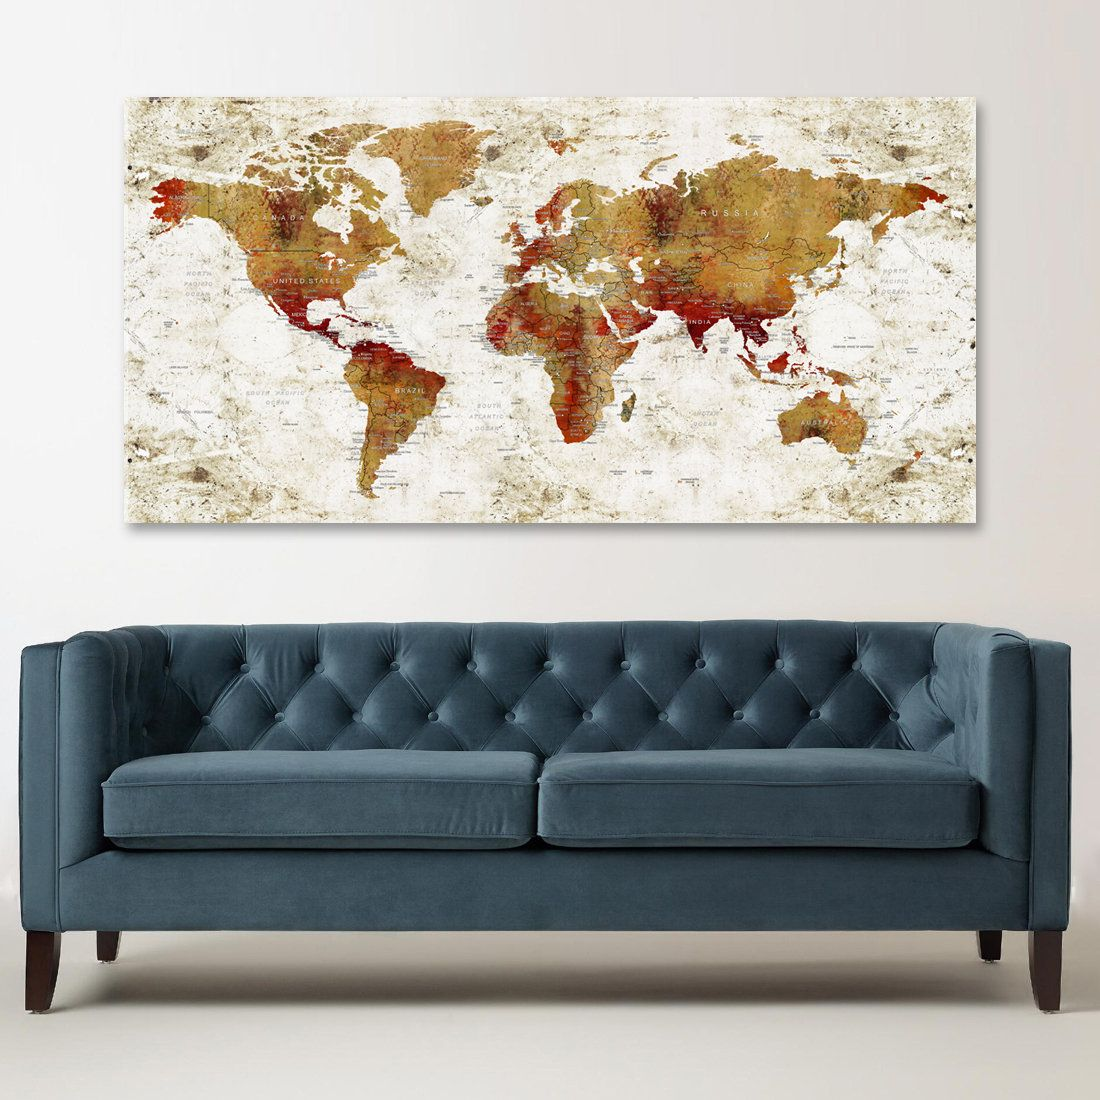 World map canvas world map wall decor push pin travel map large my new design to my etsy shop large world map canvas wall art gumiabroncs Image collections